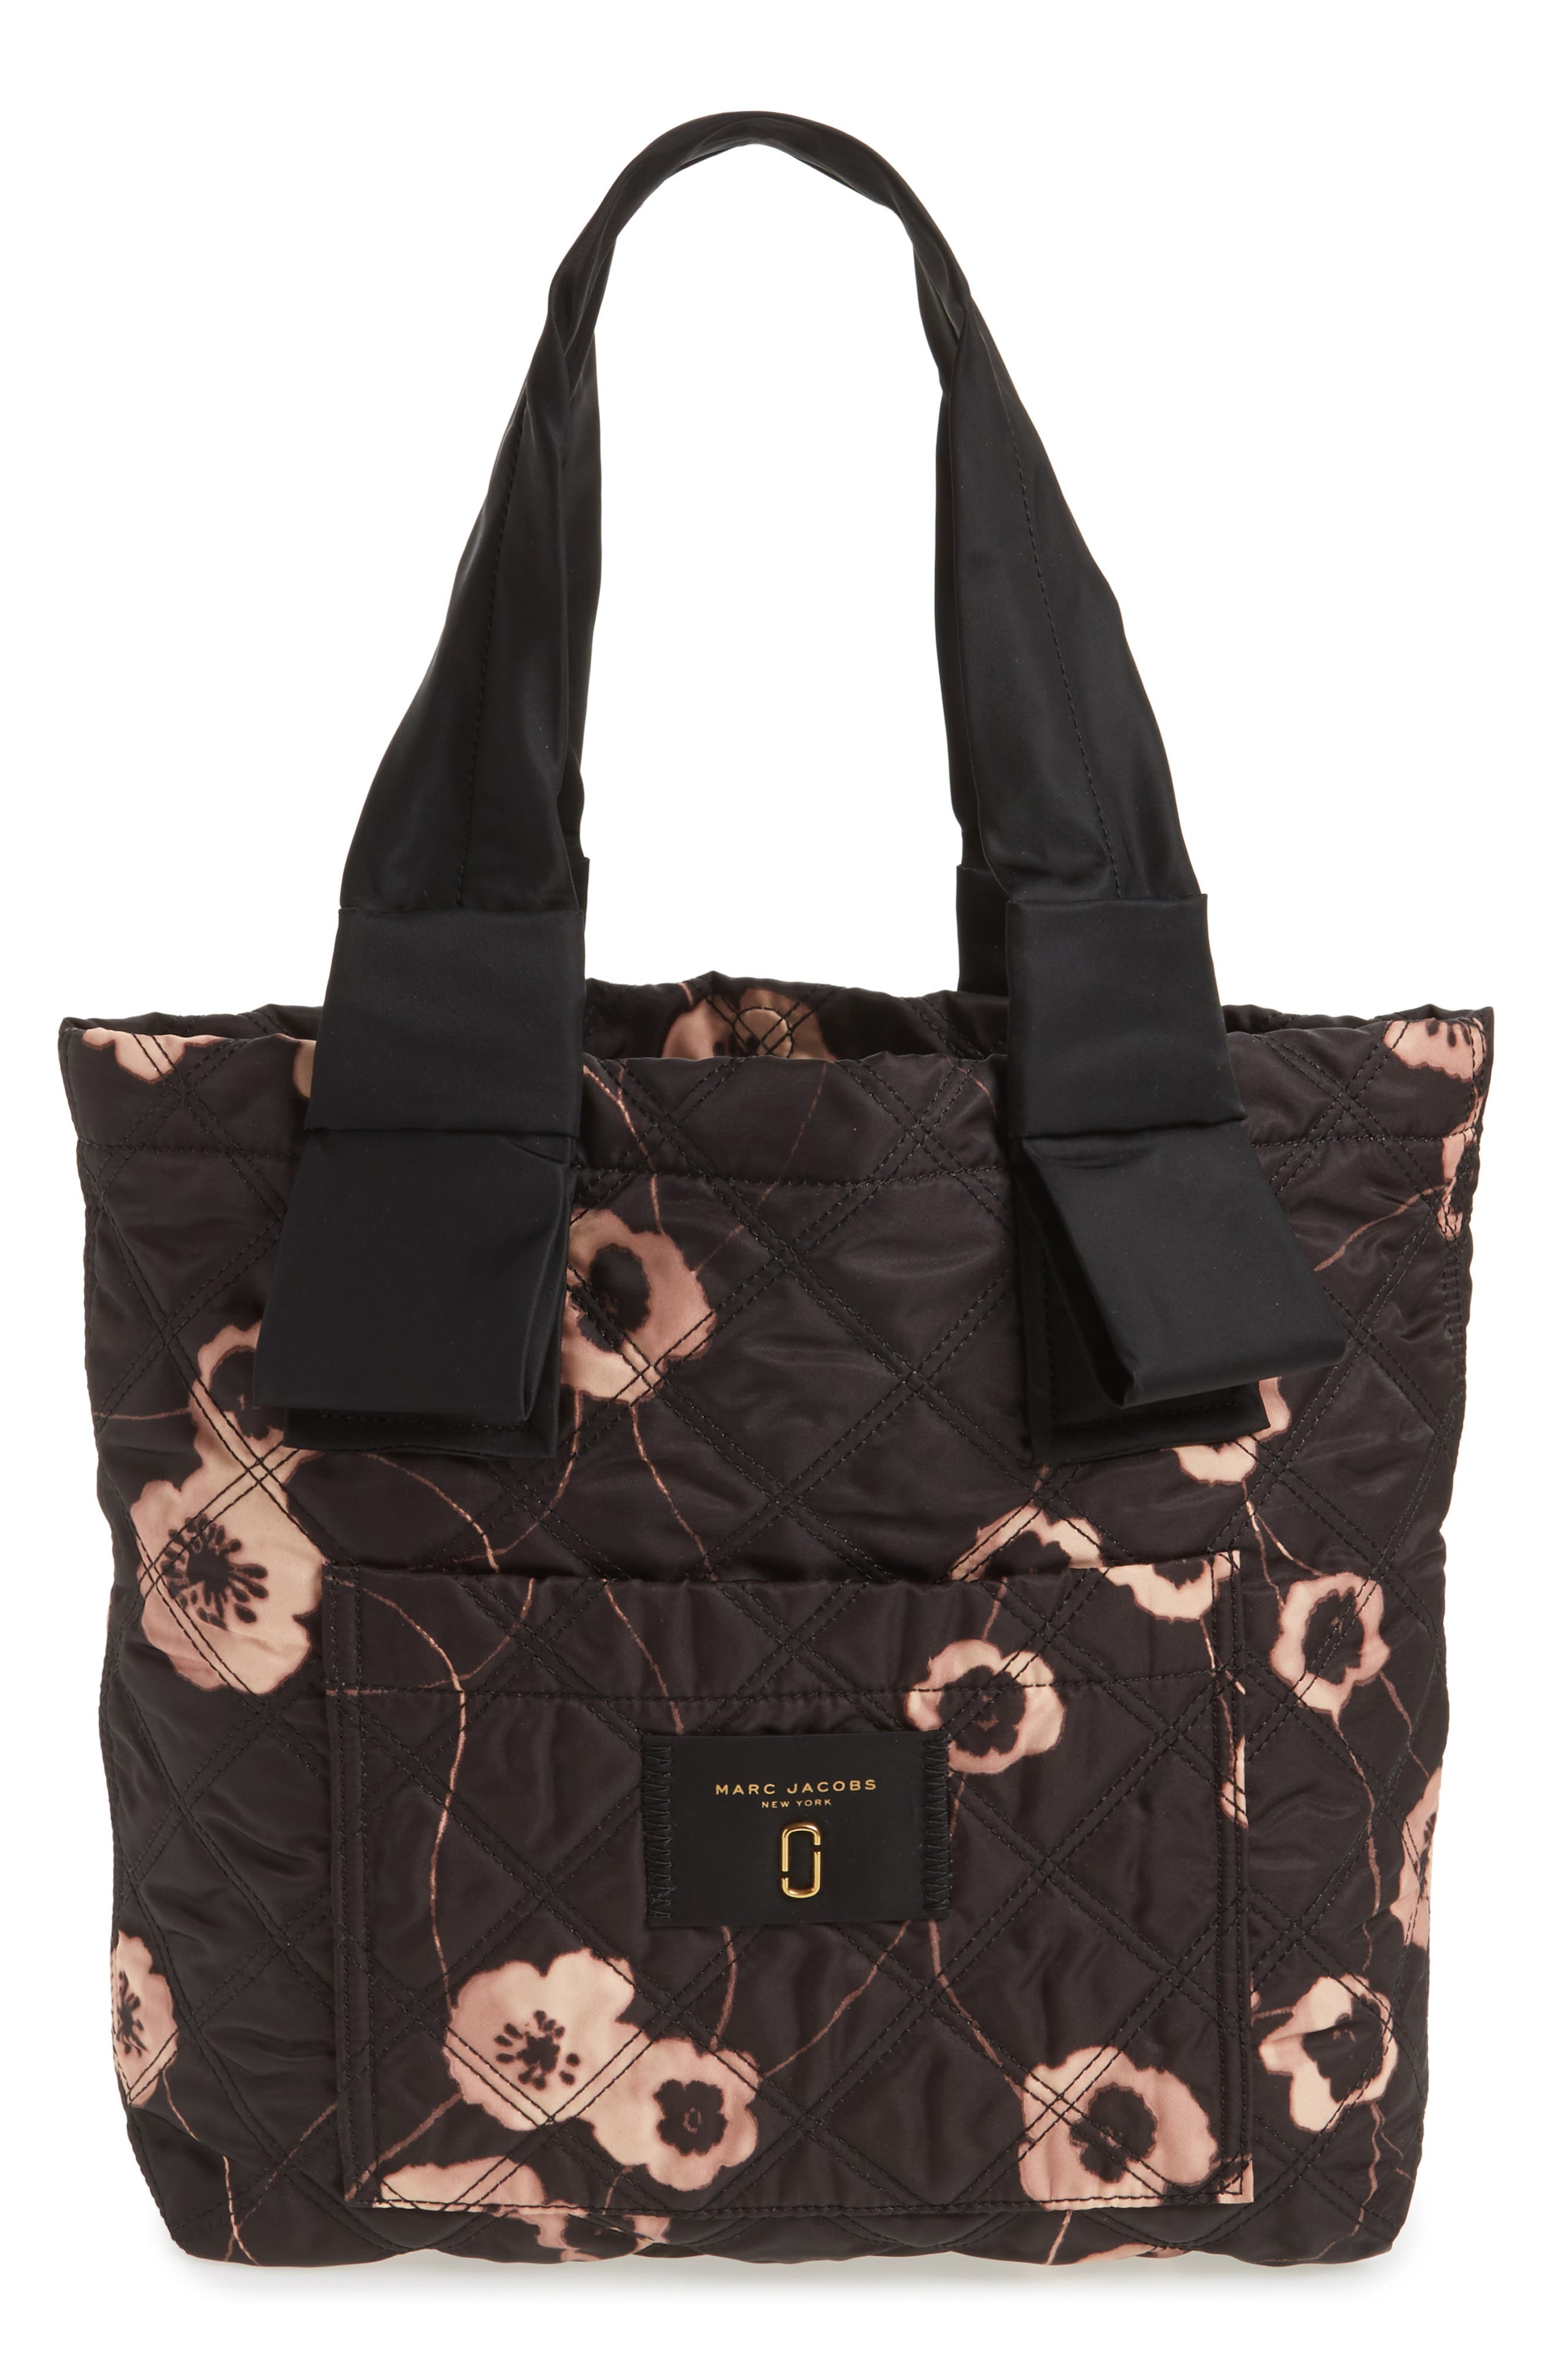 Main Image - MARC JACOBS Small Violet Vines Knot Tote